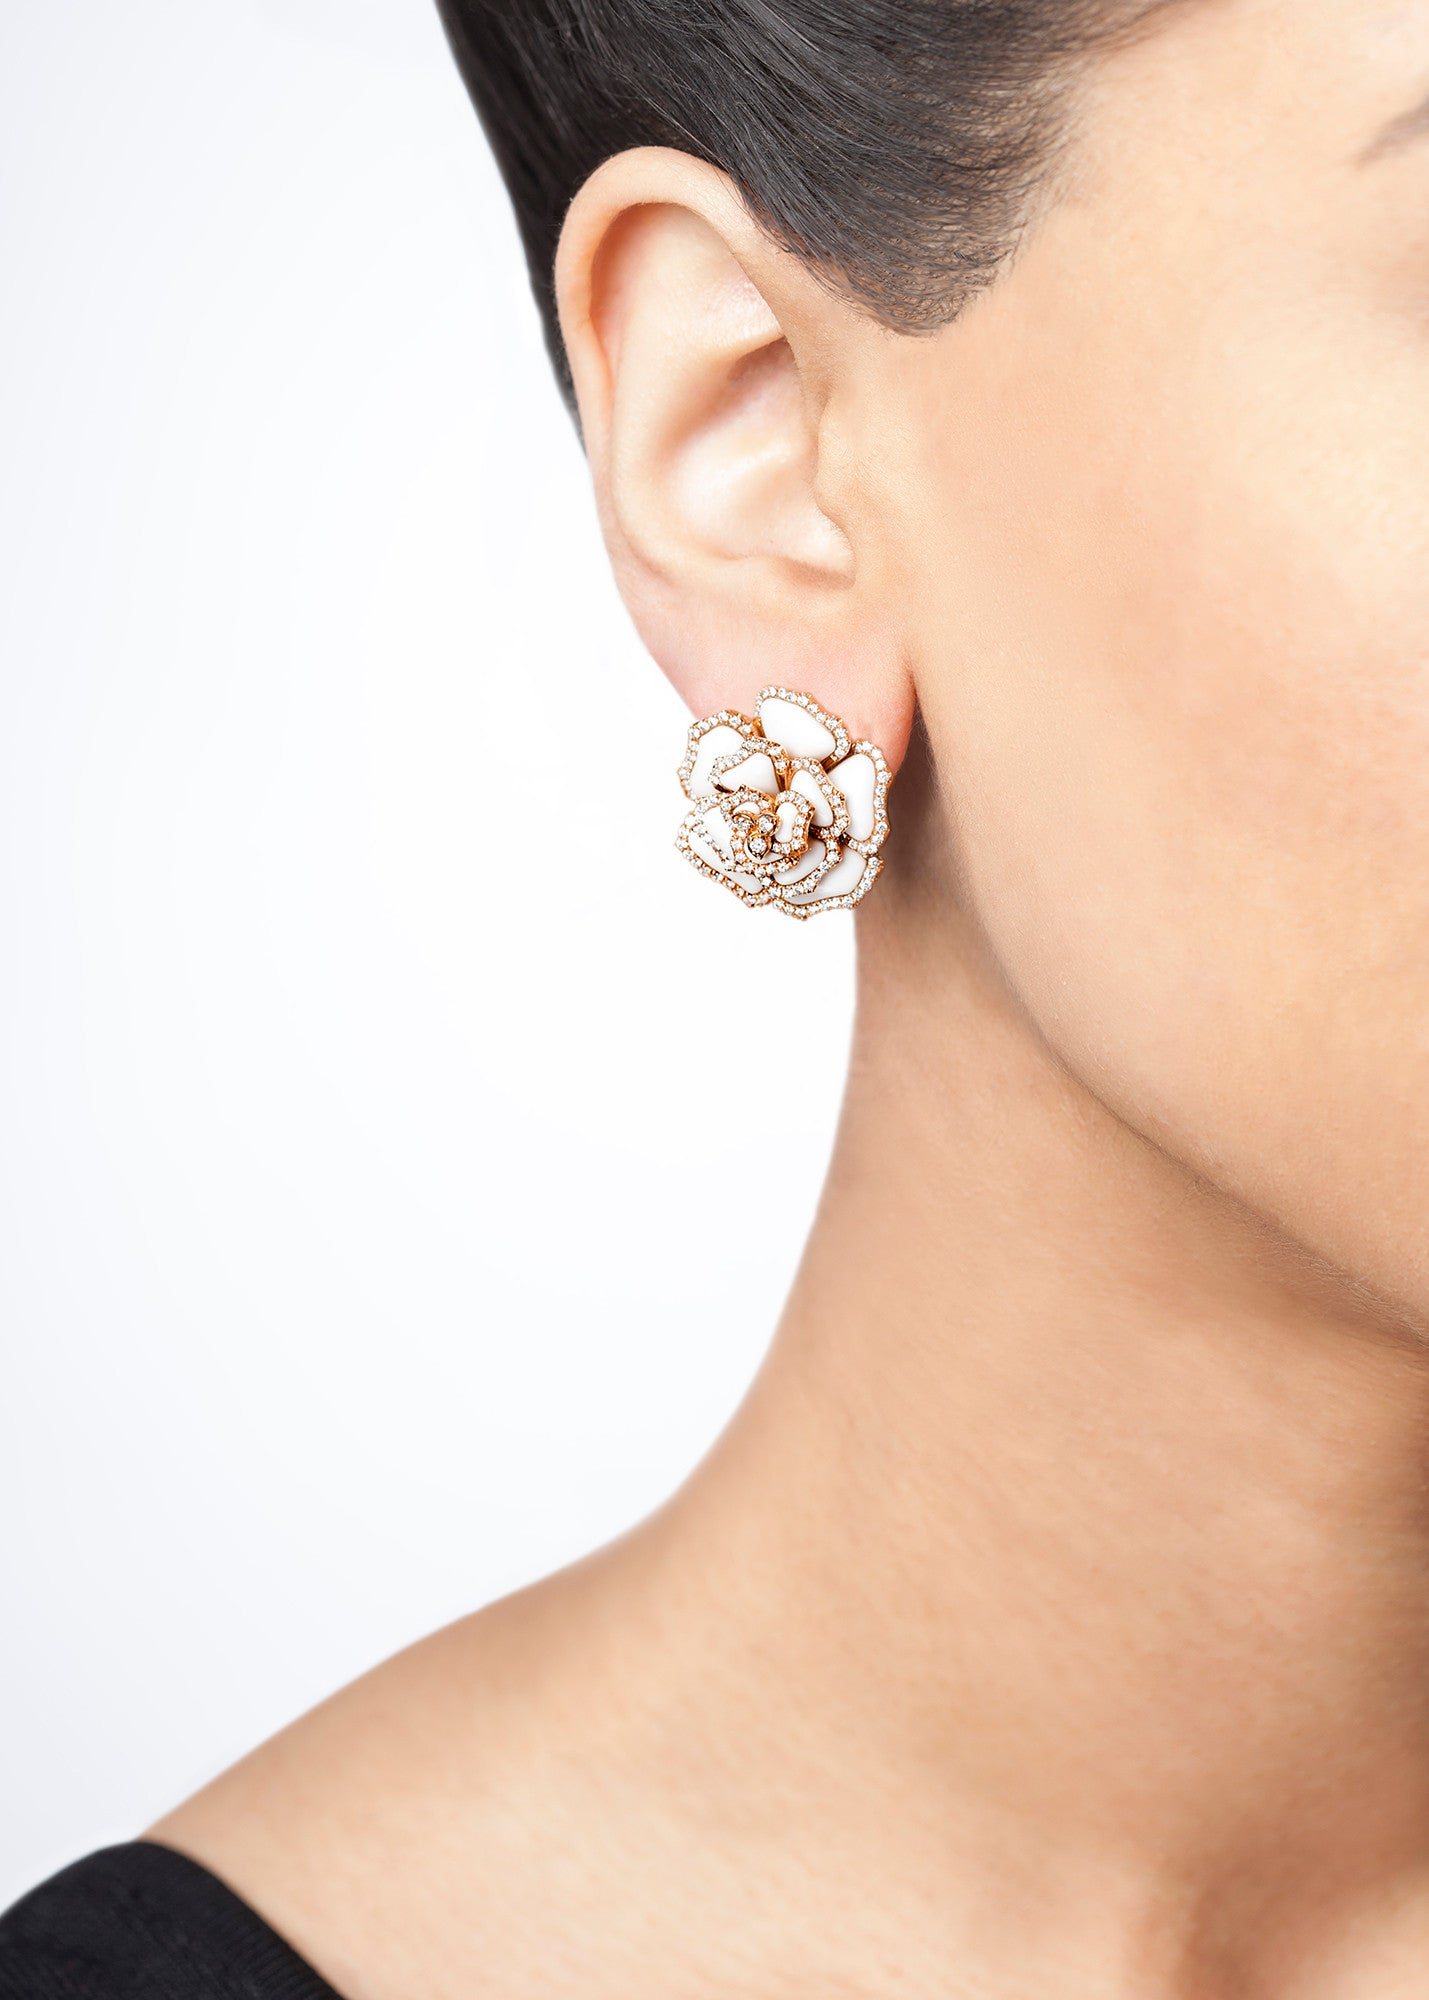 Agate & Diamond Flower Earrings (Black/White)-50% OFF!